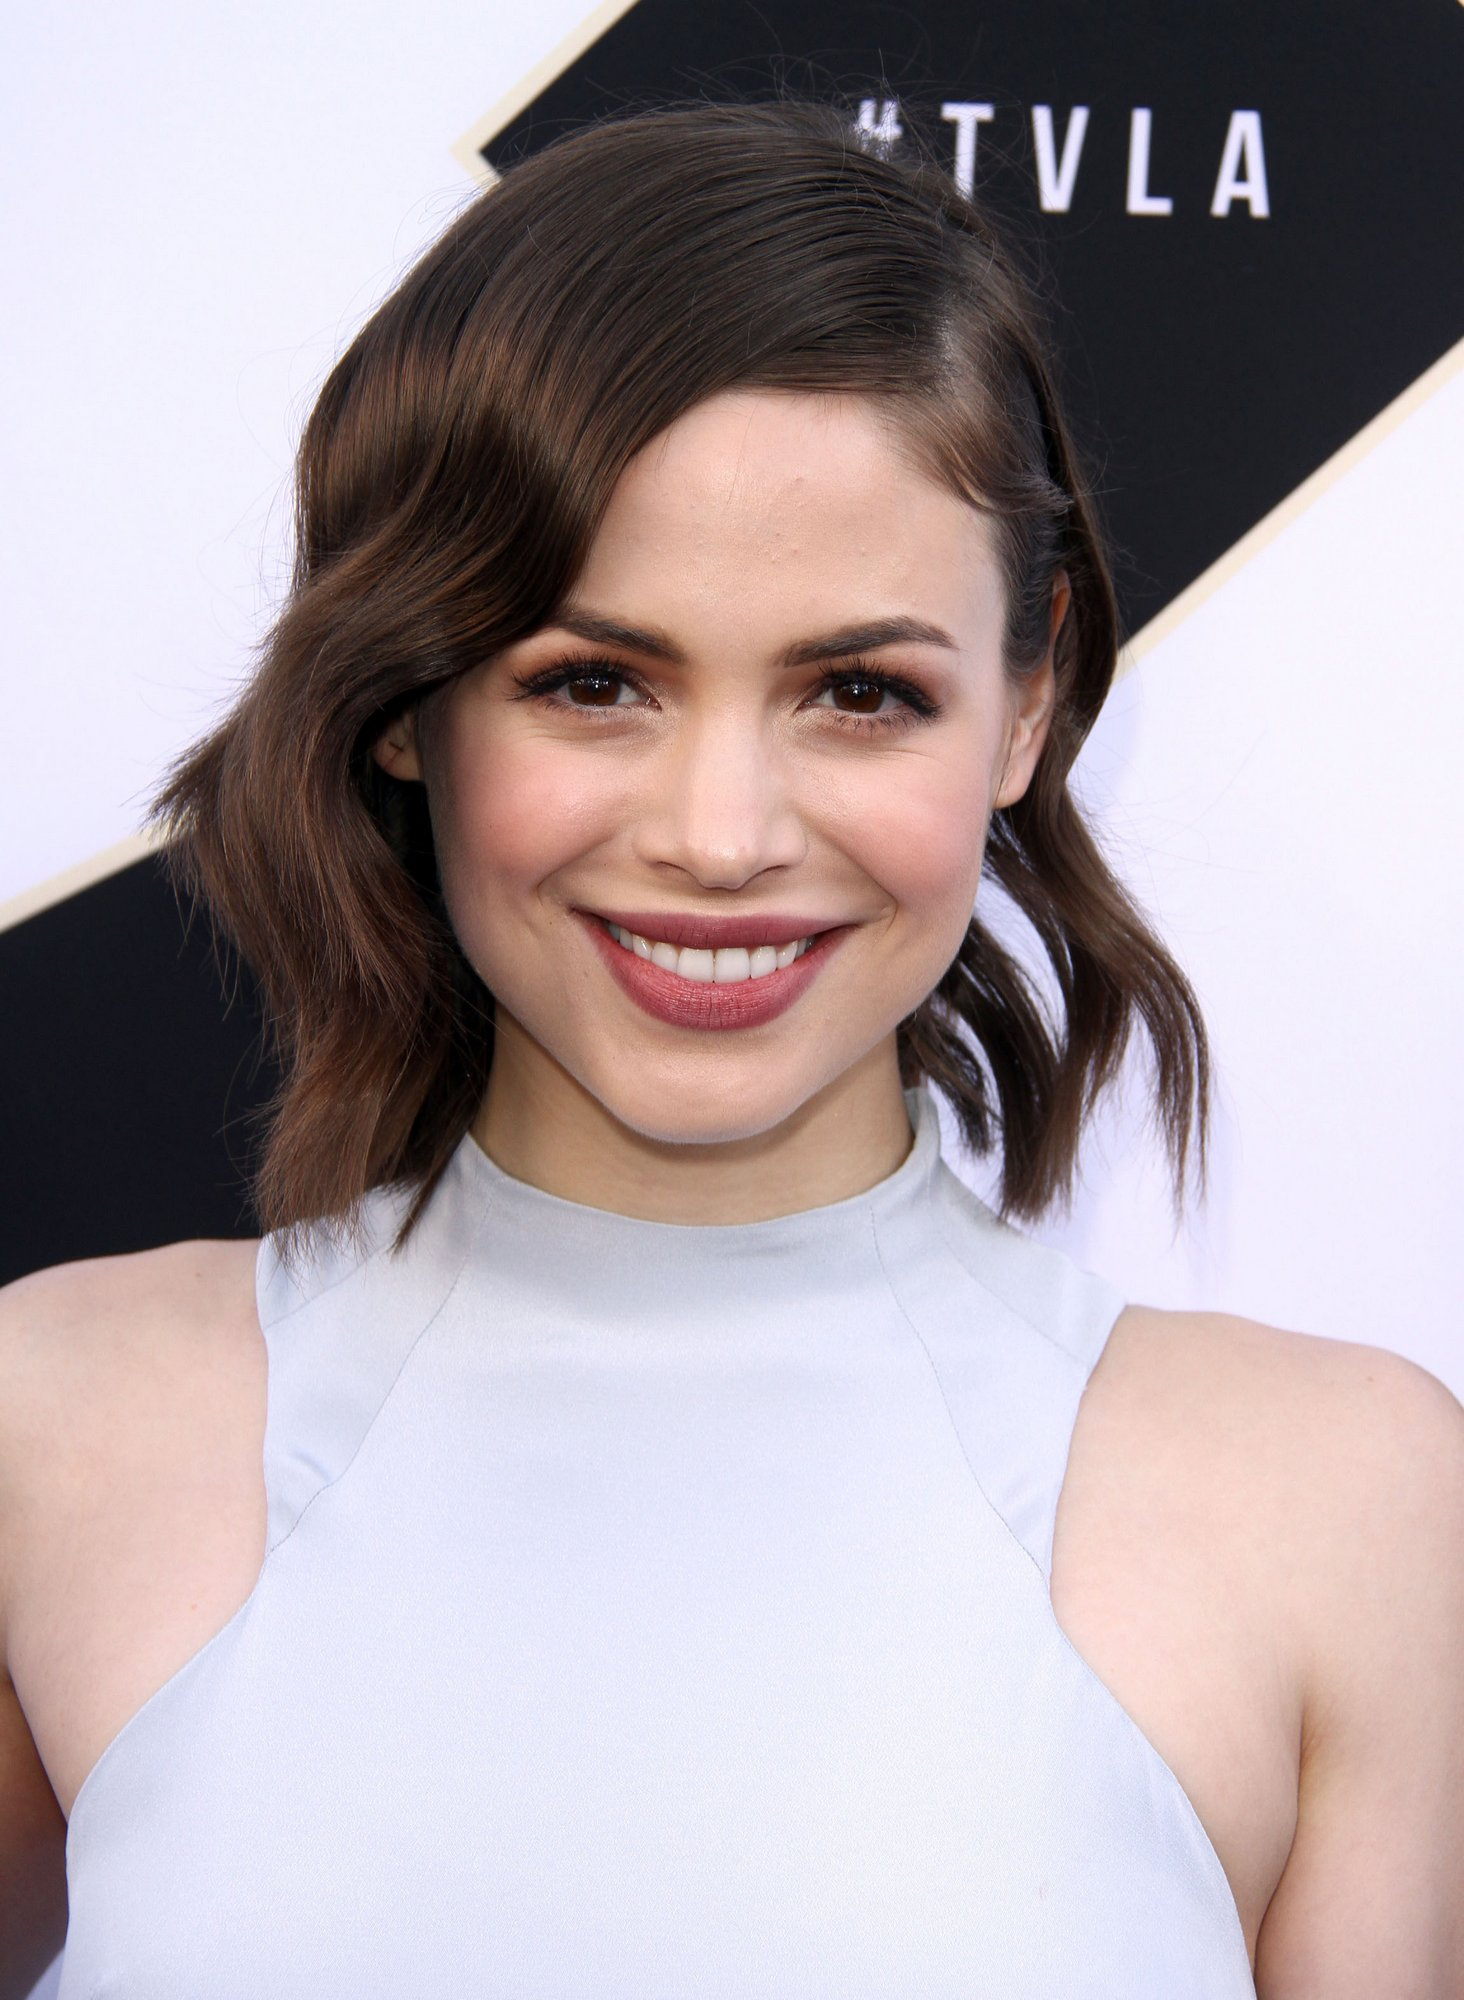 49 hot photos of Conor Leslie that will make you fall in